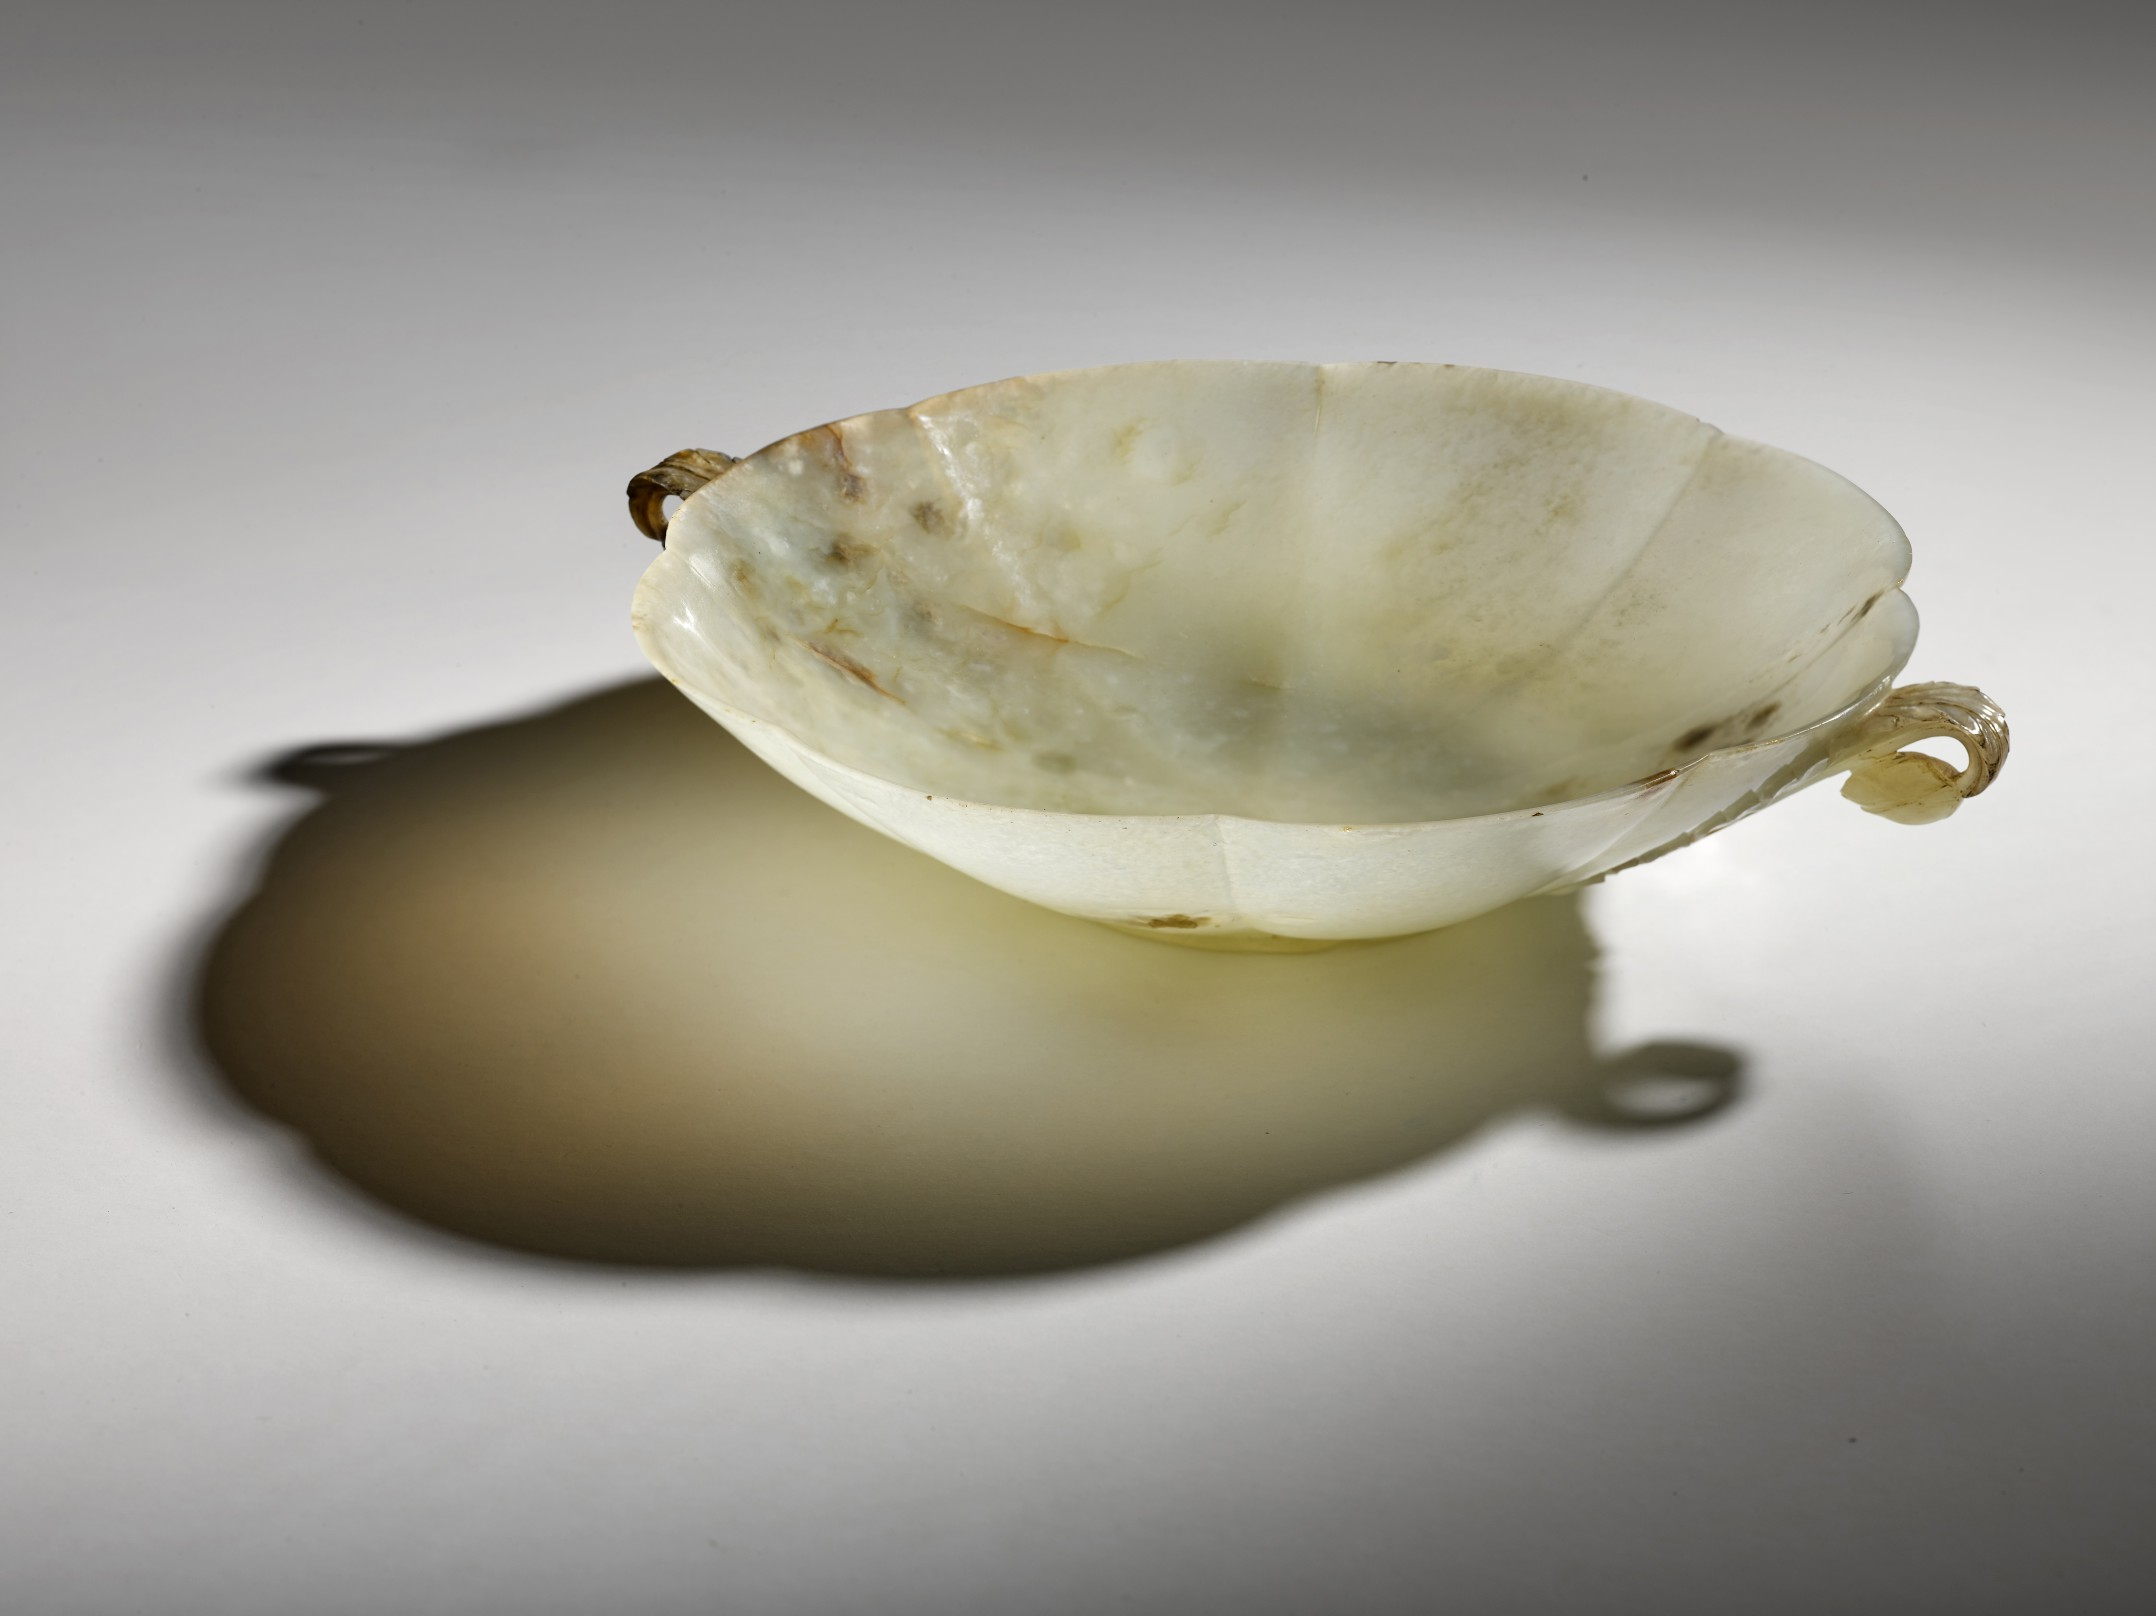 An important large Mughal carved jade bowl, India, 17th/18th century